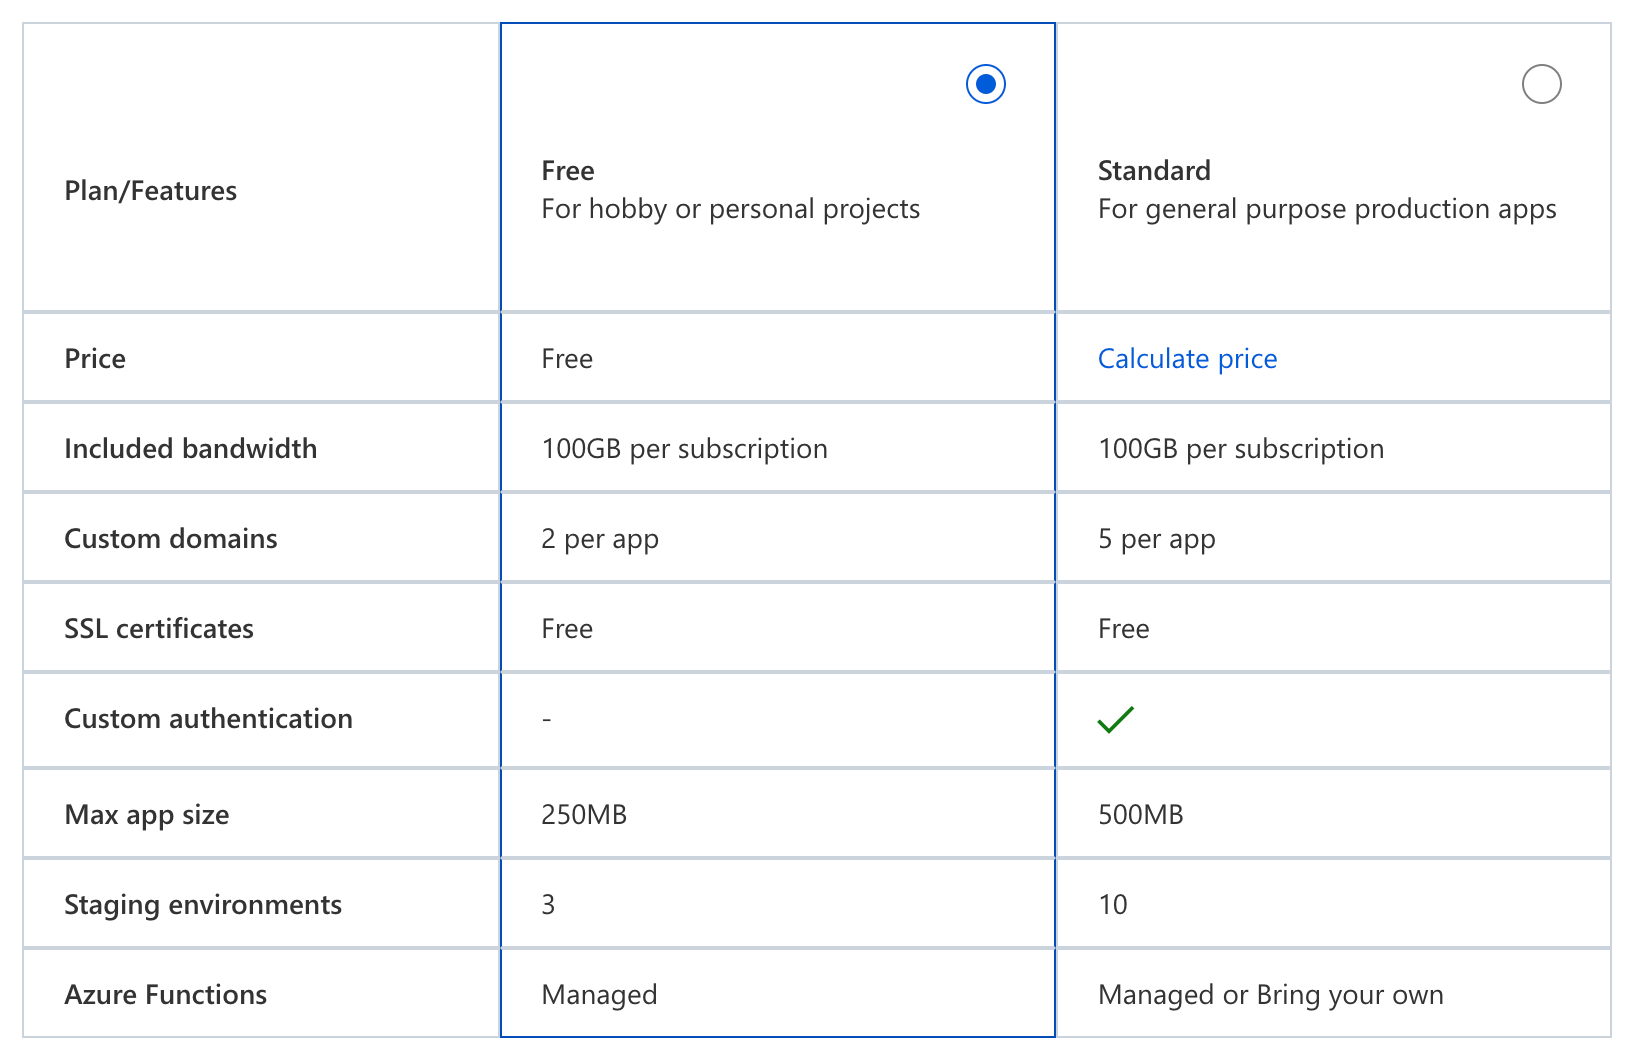 Screenshot of the Azure Static Web Apps comparison table from the Azure Portal